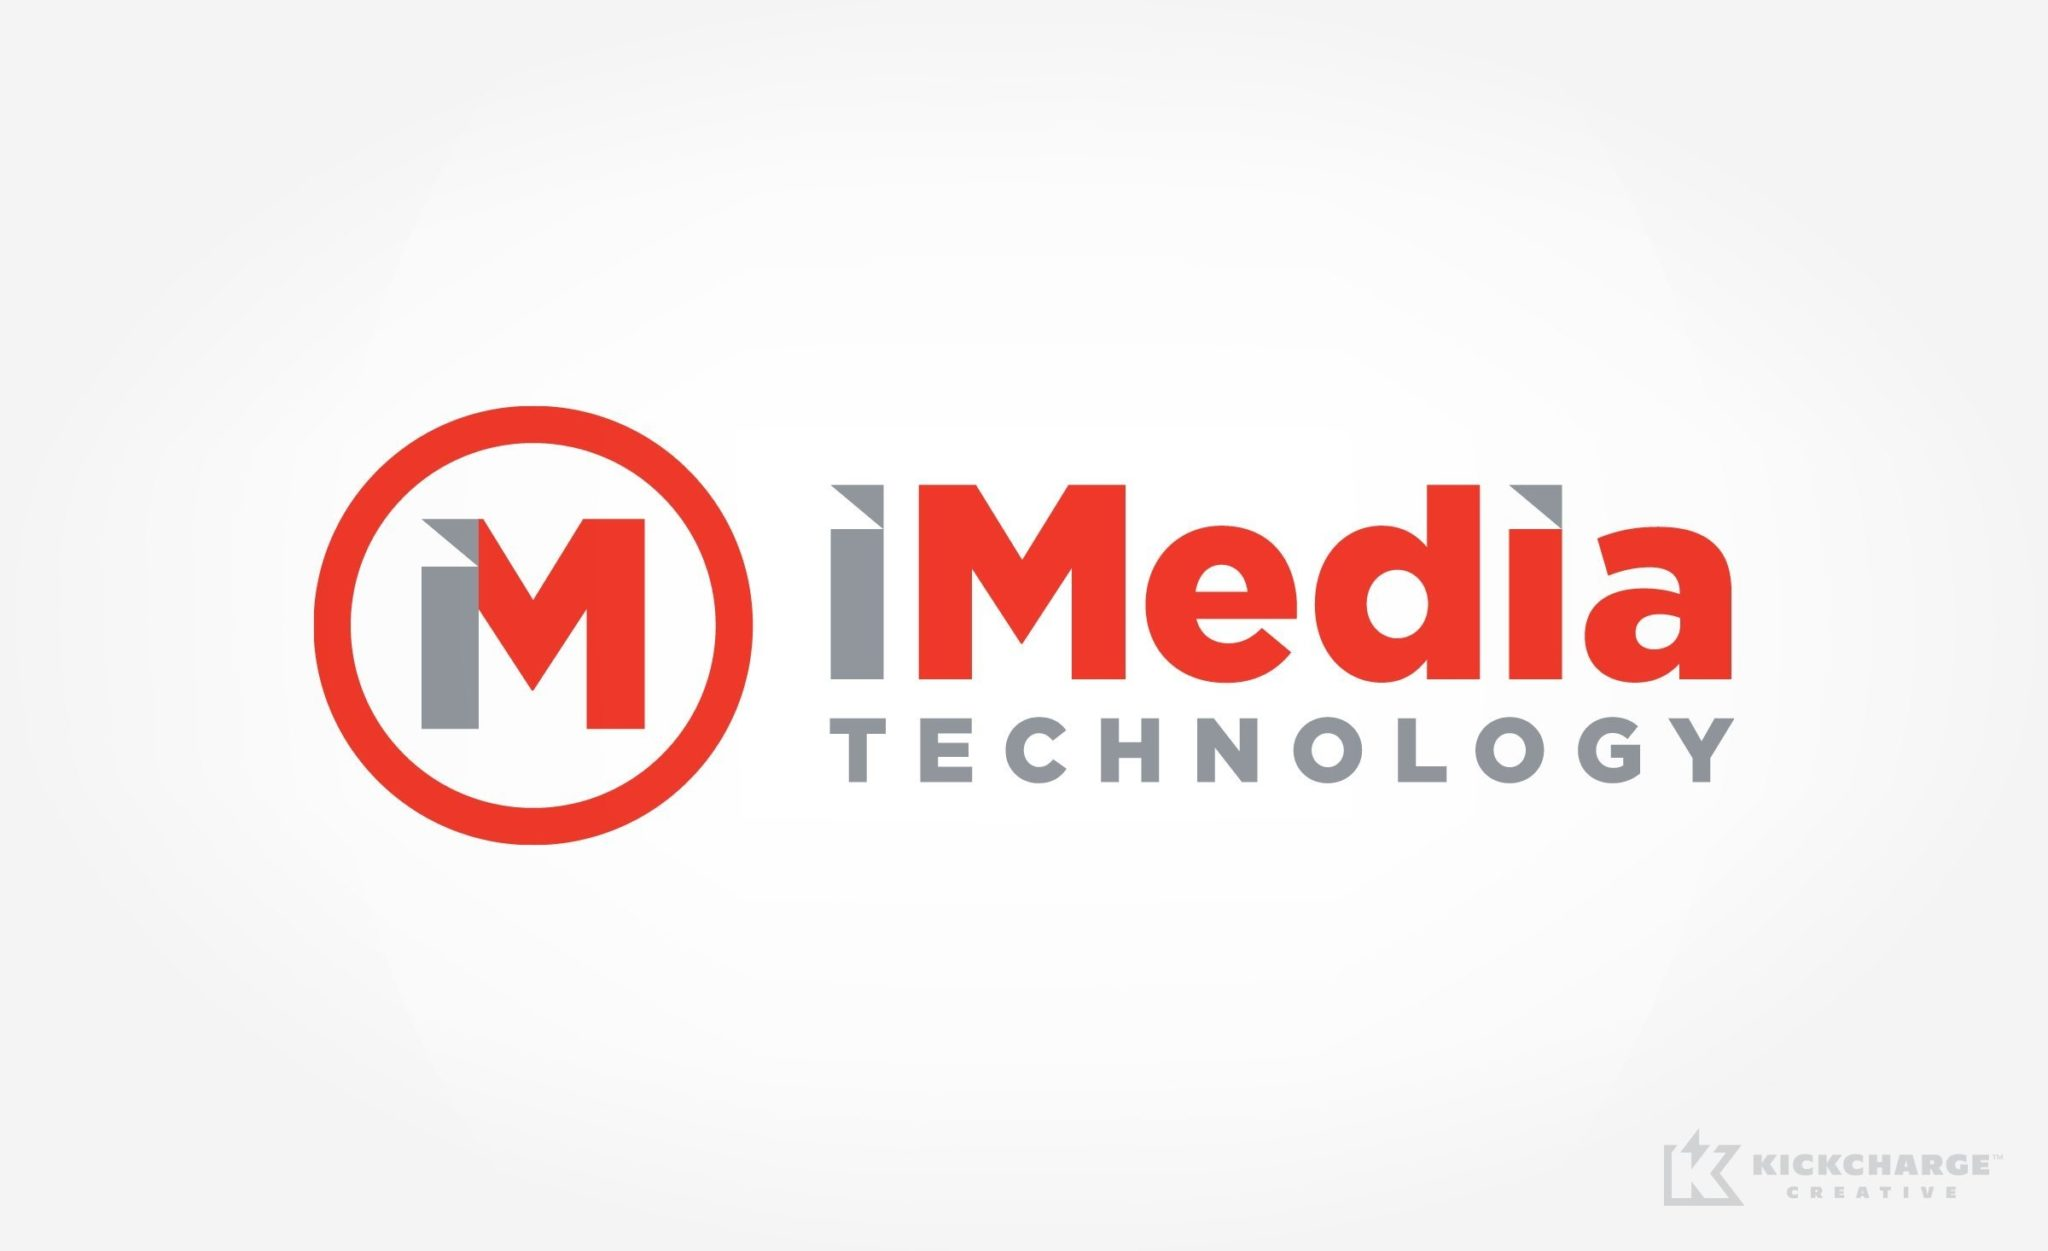 iMedia Technology